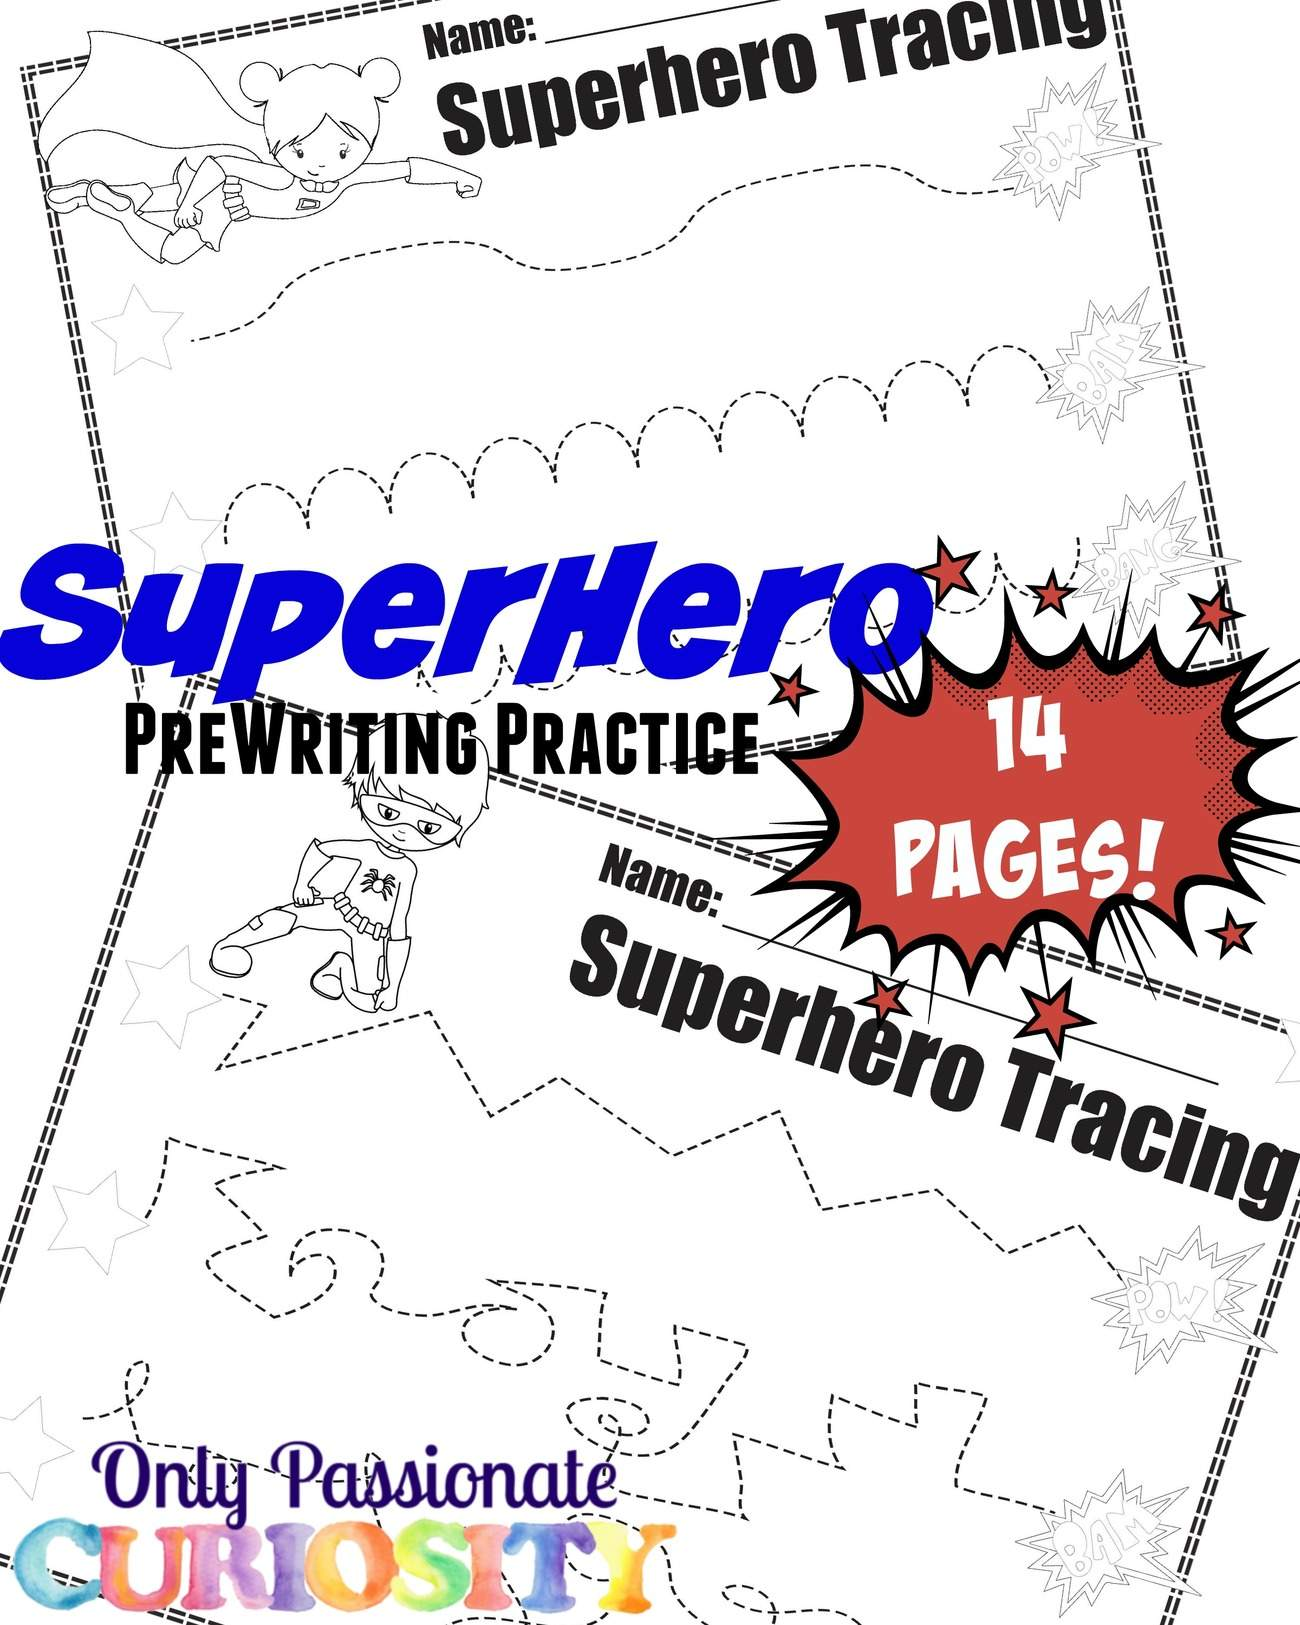 Super Hero Pre Writing Pack Only Passionate Curiosity